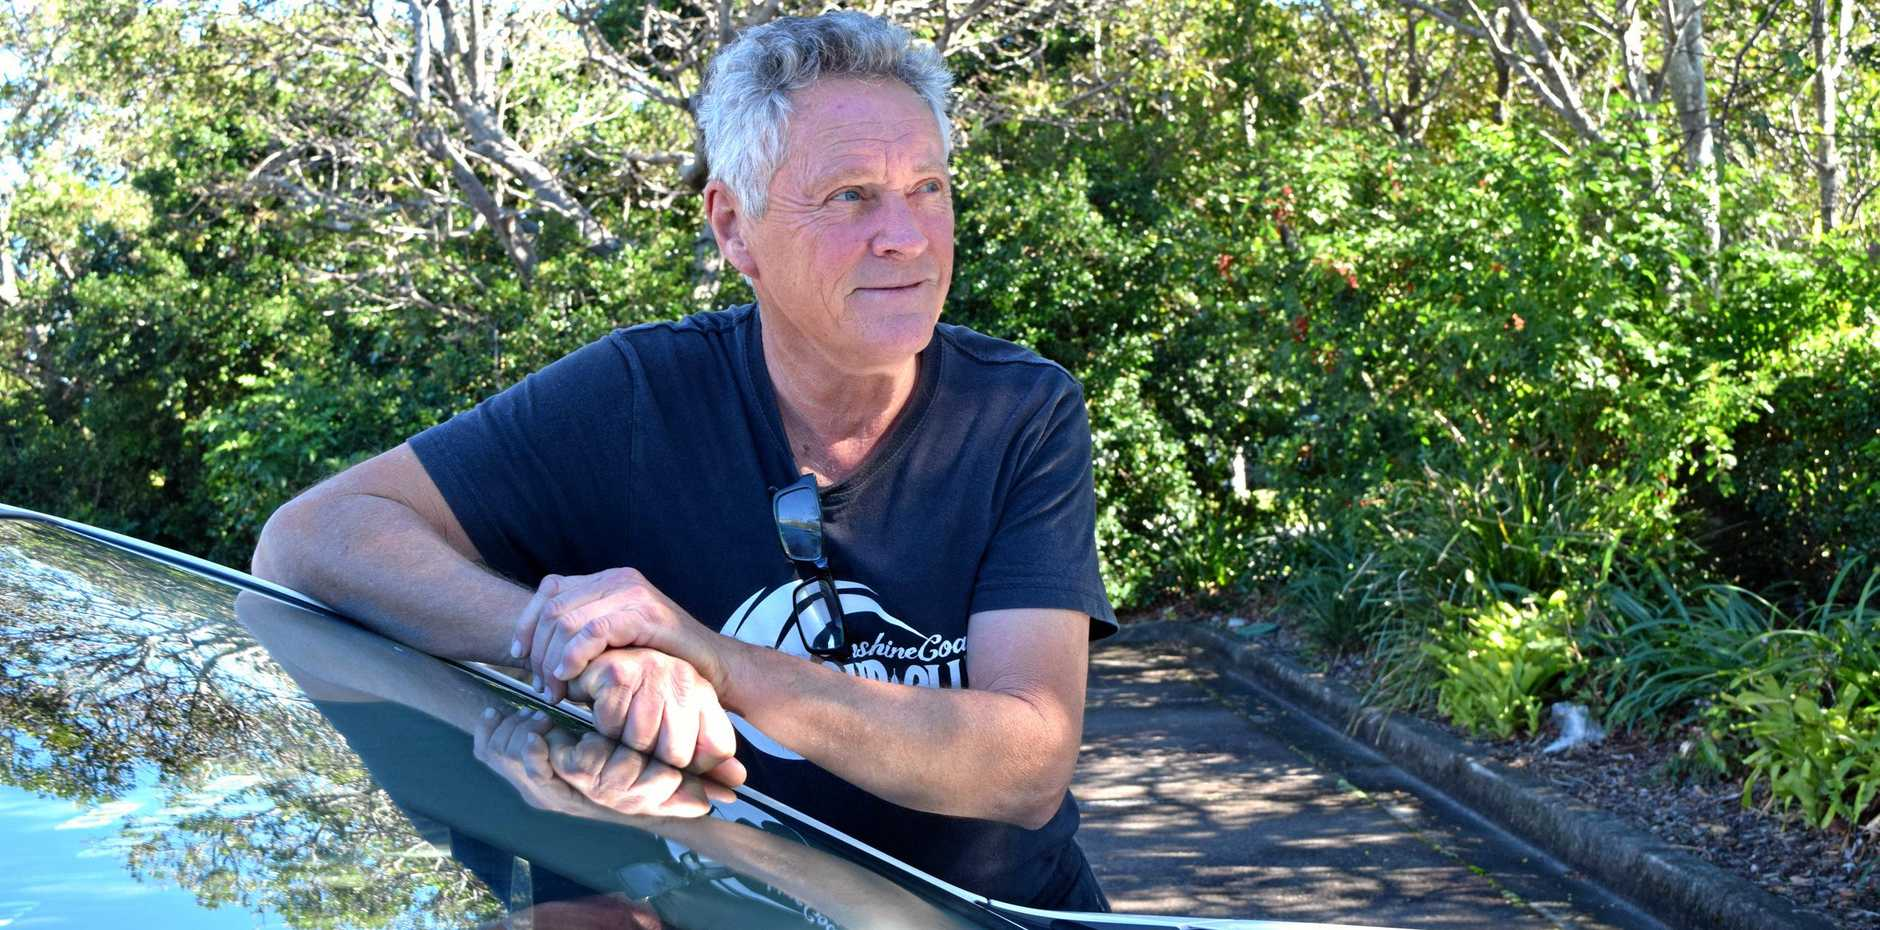 Finance broker Roger Morrison caught an Uber from Maroochydore to Kunda Park on July 24 without issue but sometime after that fare his Uber profile was stolen and used for trips have never took.